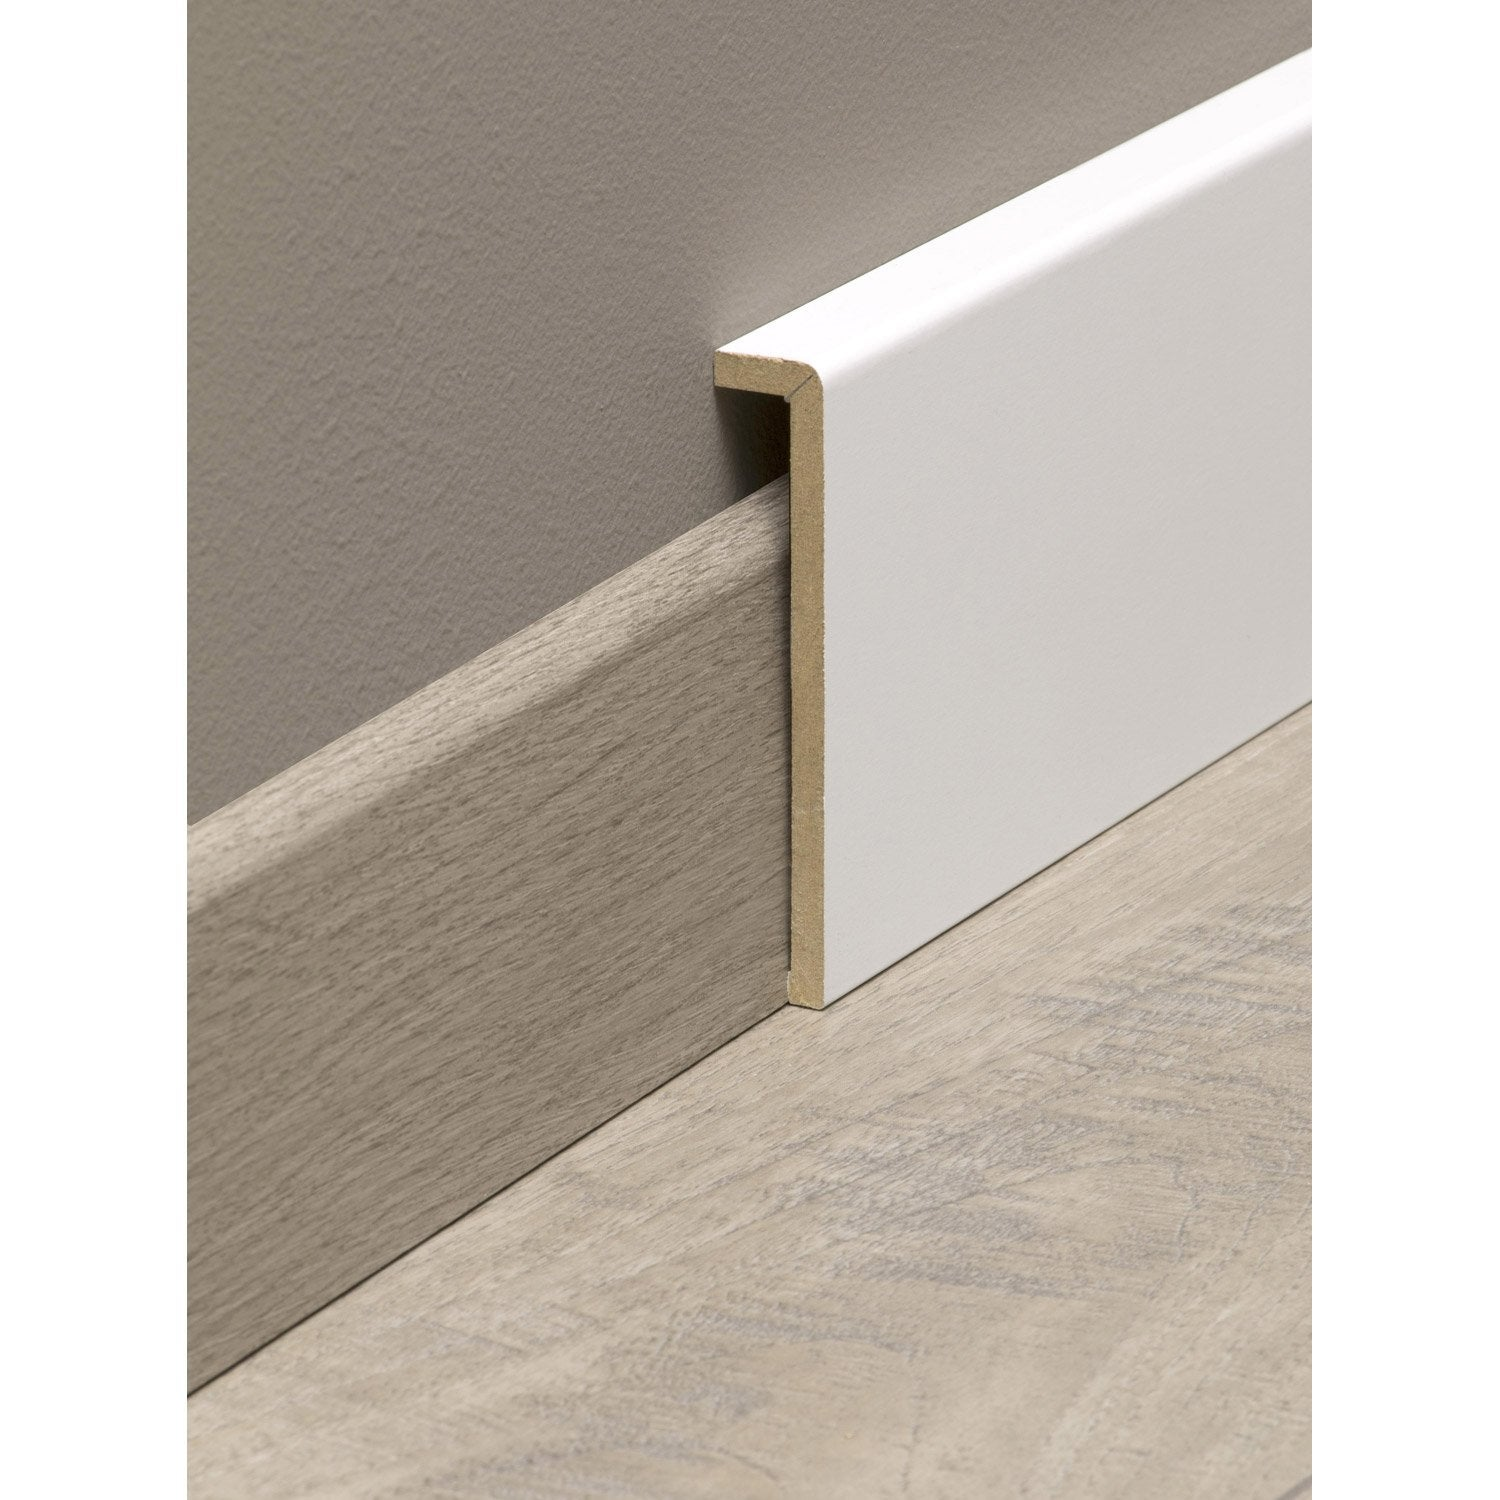 surplinthe de r novation m dium mdf m lamin blanc 19 x 110 mm l 2 2 m leroy merlin